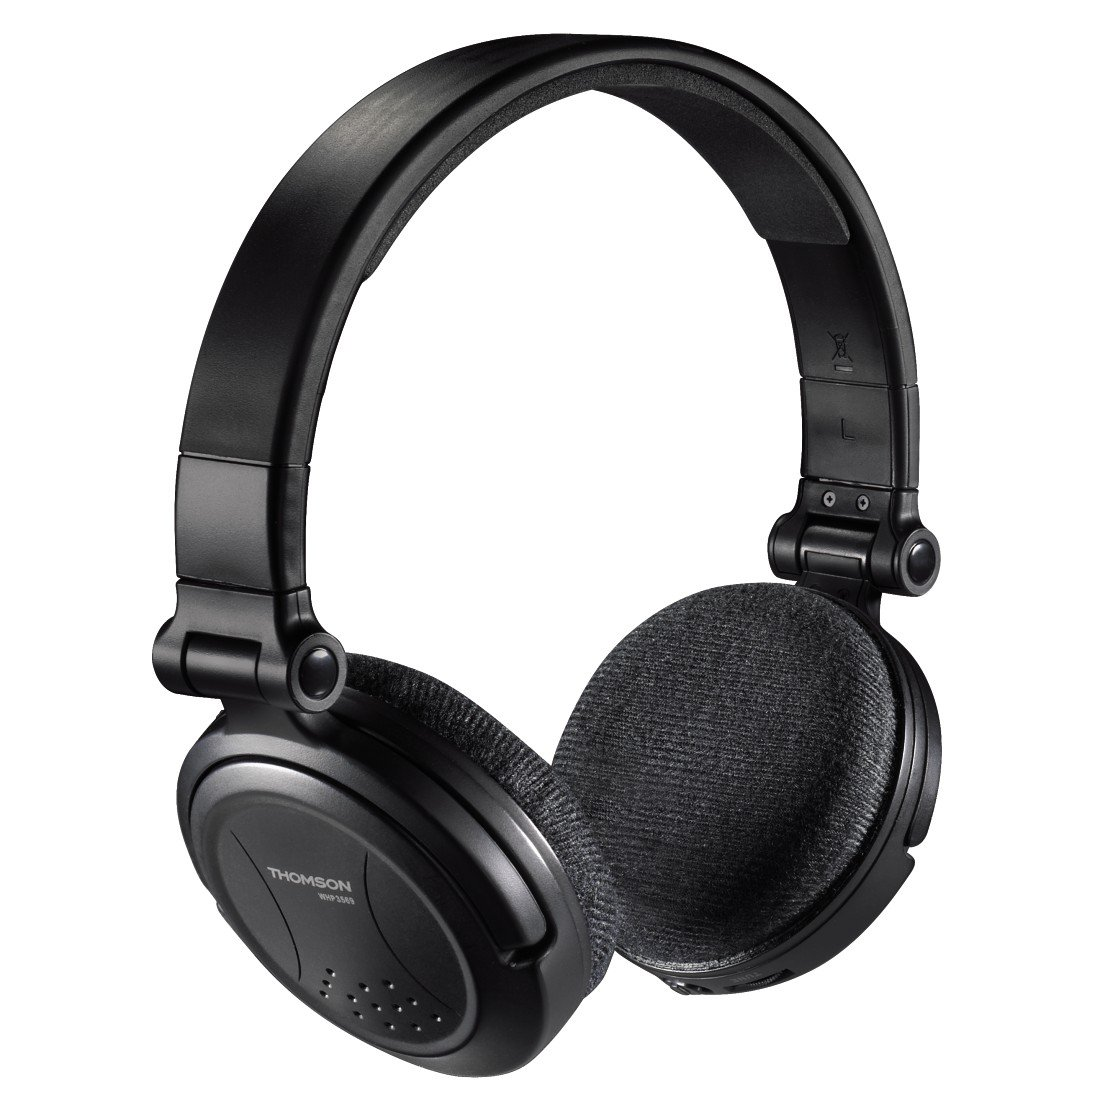 Thomson WHP3569 - Auriculares de diadema abiertos inalámbricos, negro: Amazon.es: Electrónica